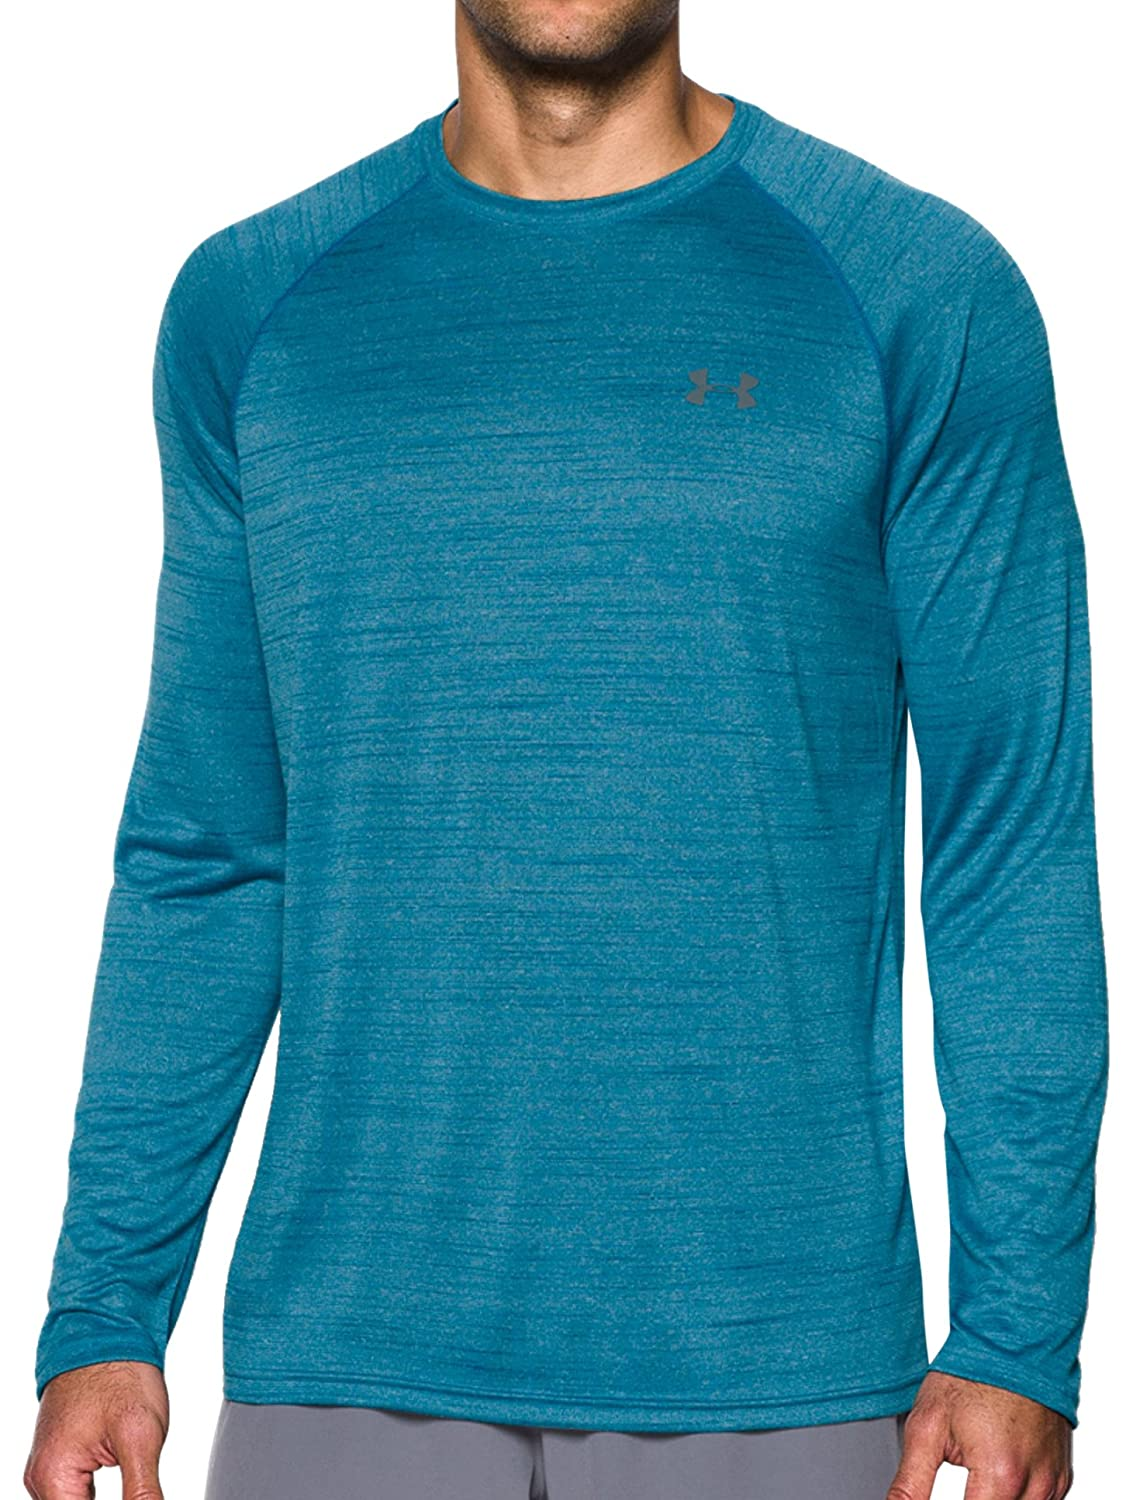 Under Armour Men's Tech Patterned Long Sleeve T-Shirt Under Armour Apparel 1264220